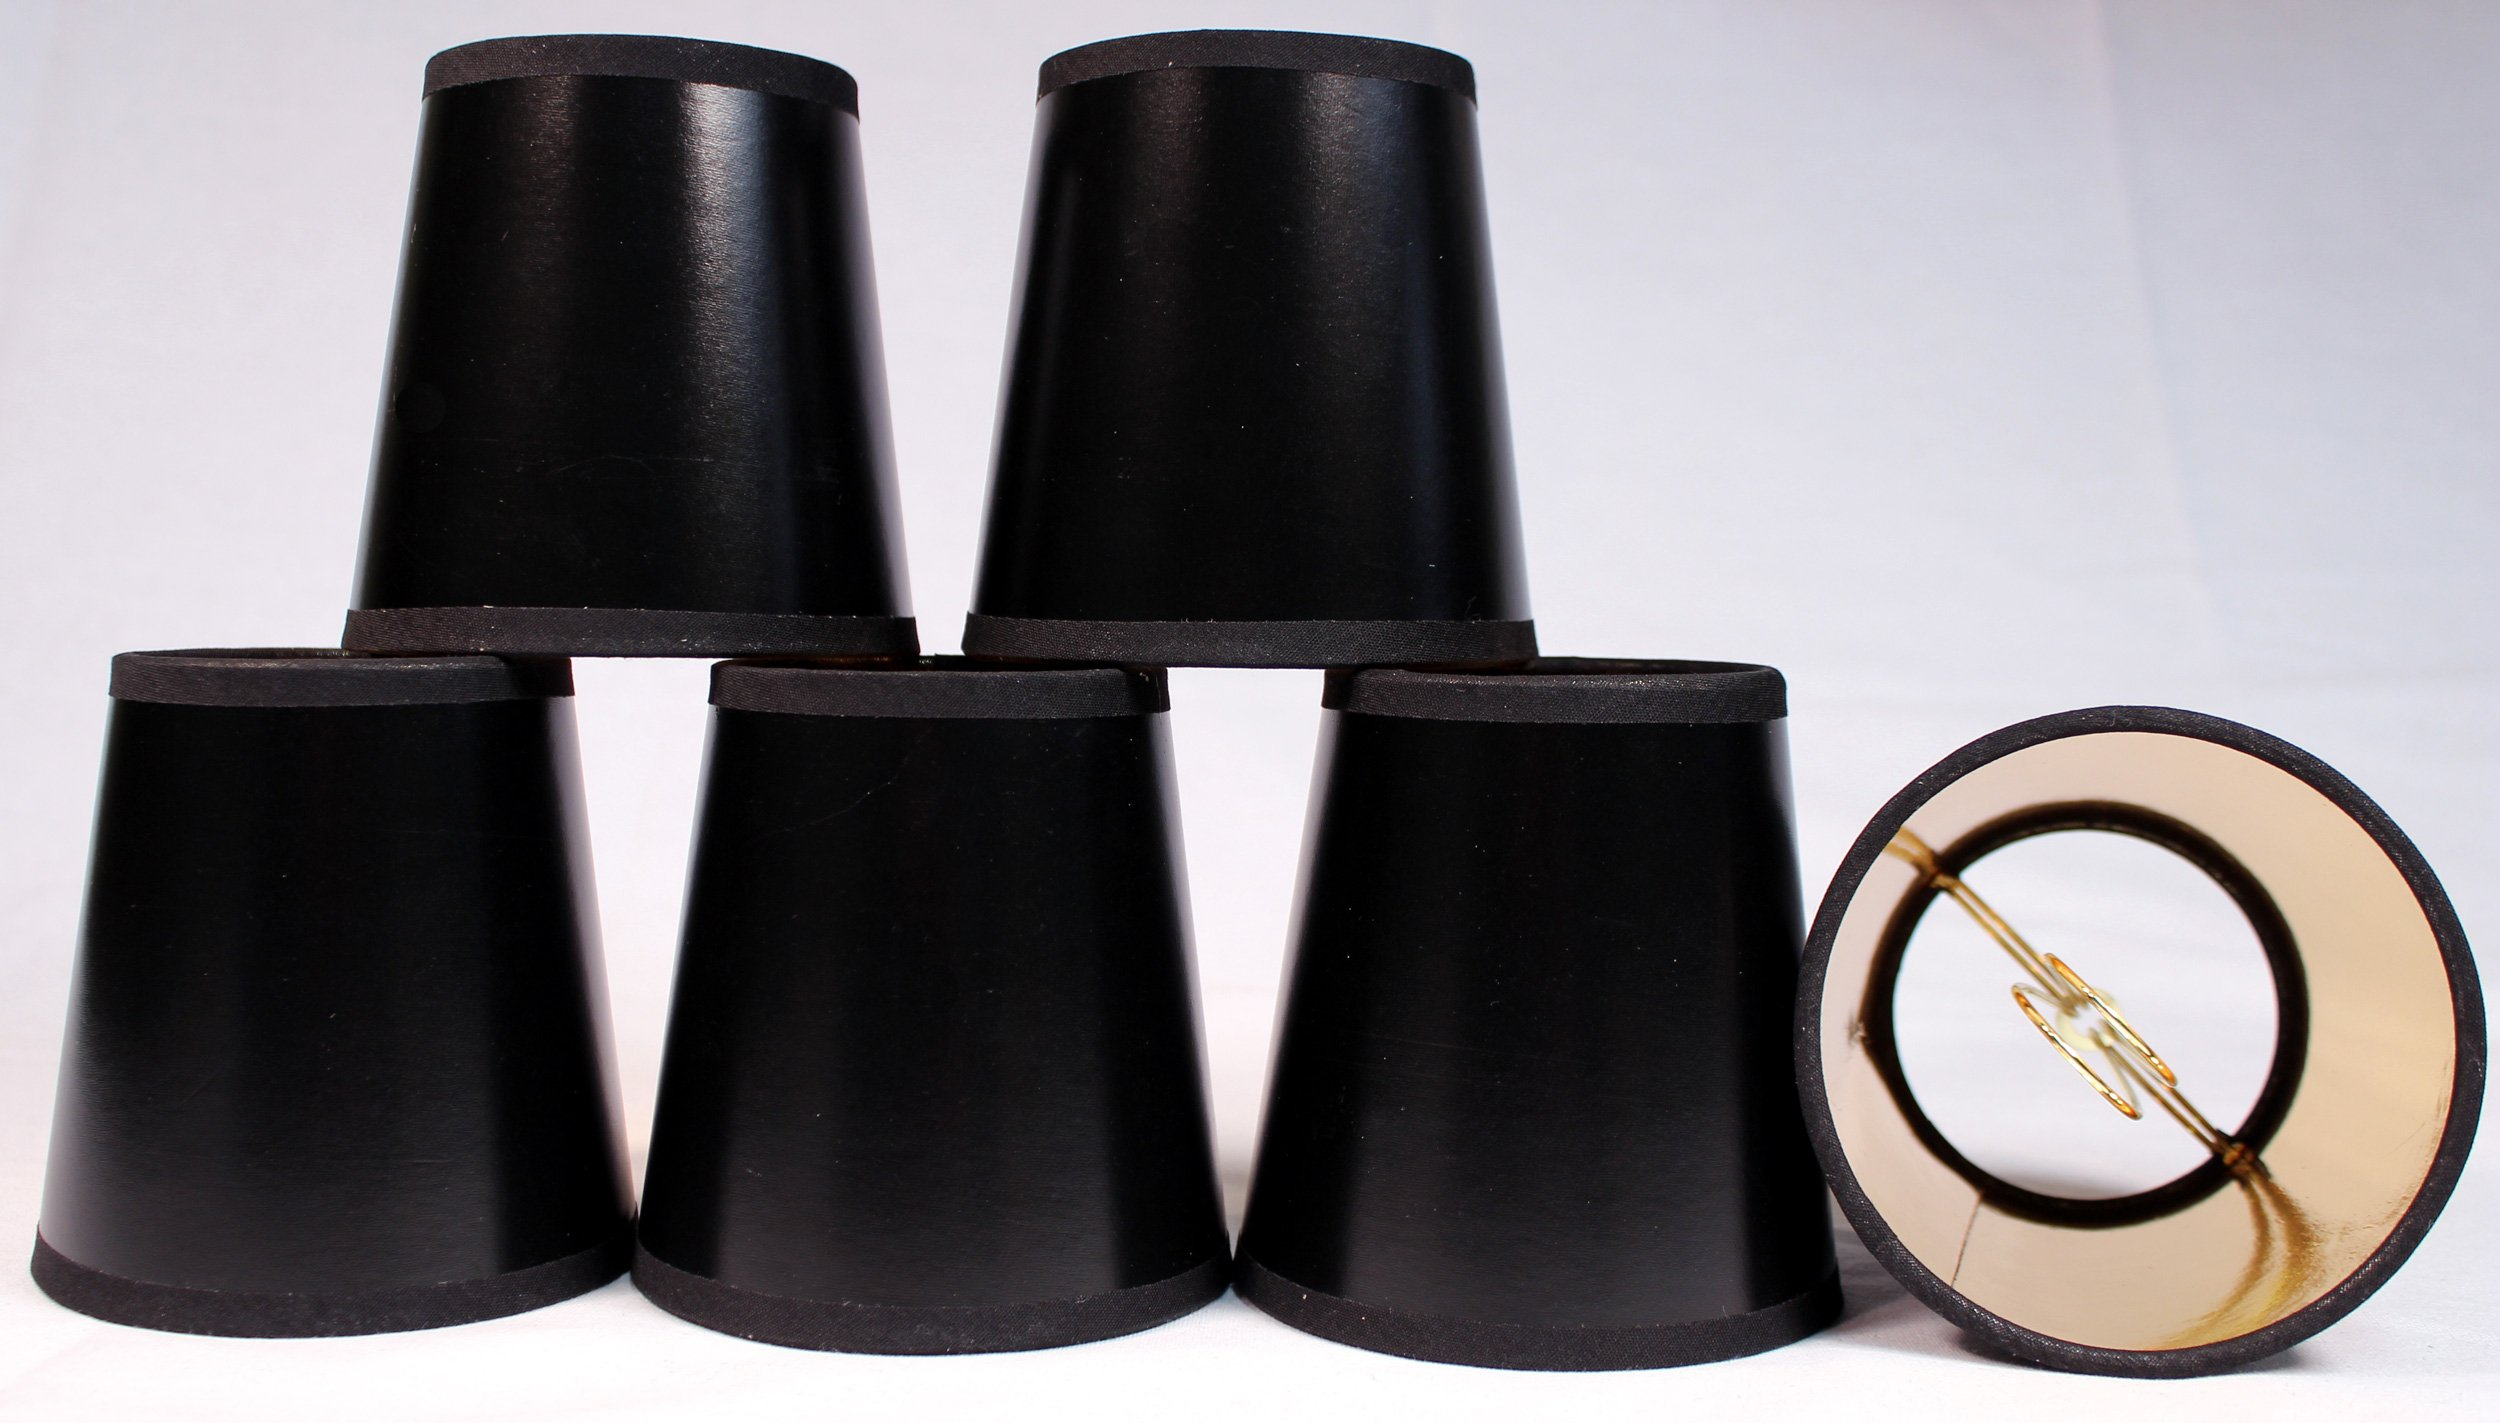 Cheap paper lamp shades find paper lamp shades deals on line at get quotations creative hobbies black parchment paper chandelier lamp shades with gold paper liner 4 aloadofball Choice Image